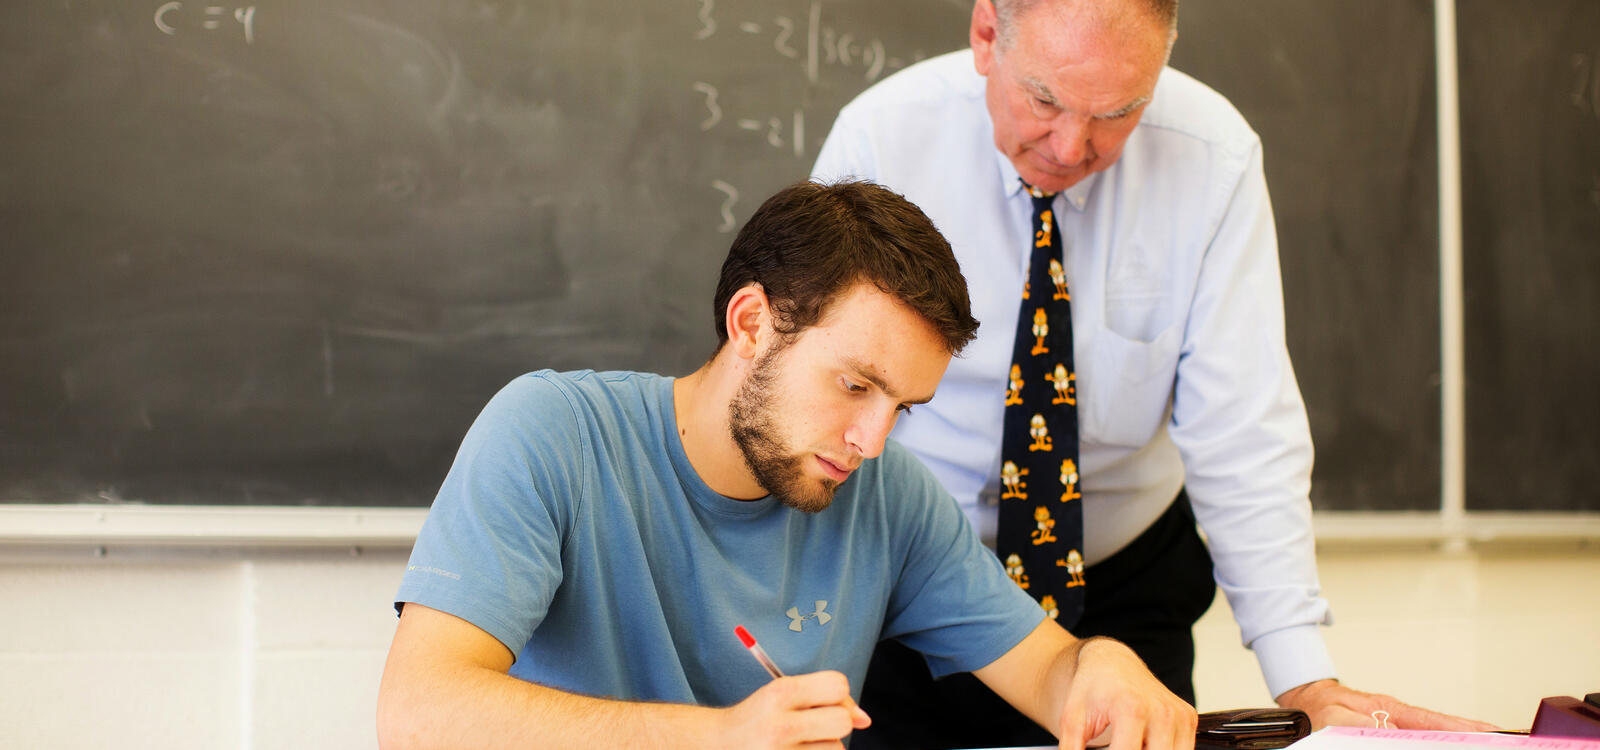 A student sits at a desk and completes his homework as his professor stands behind him to help